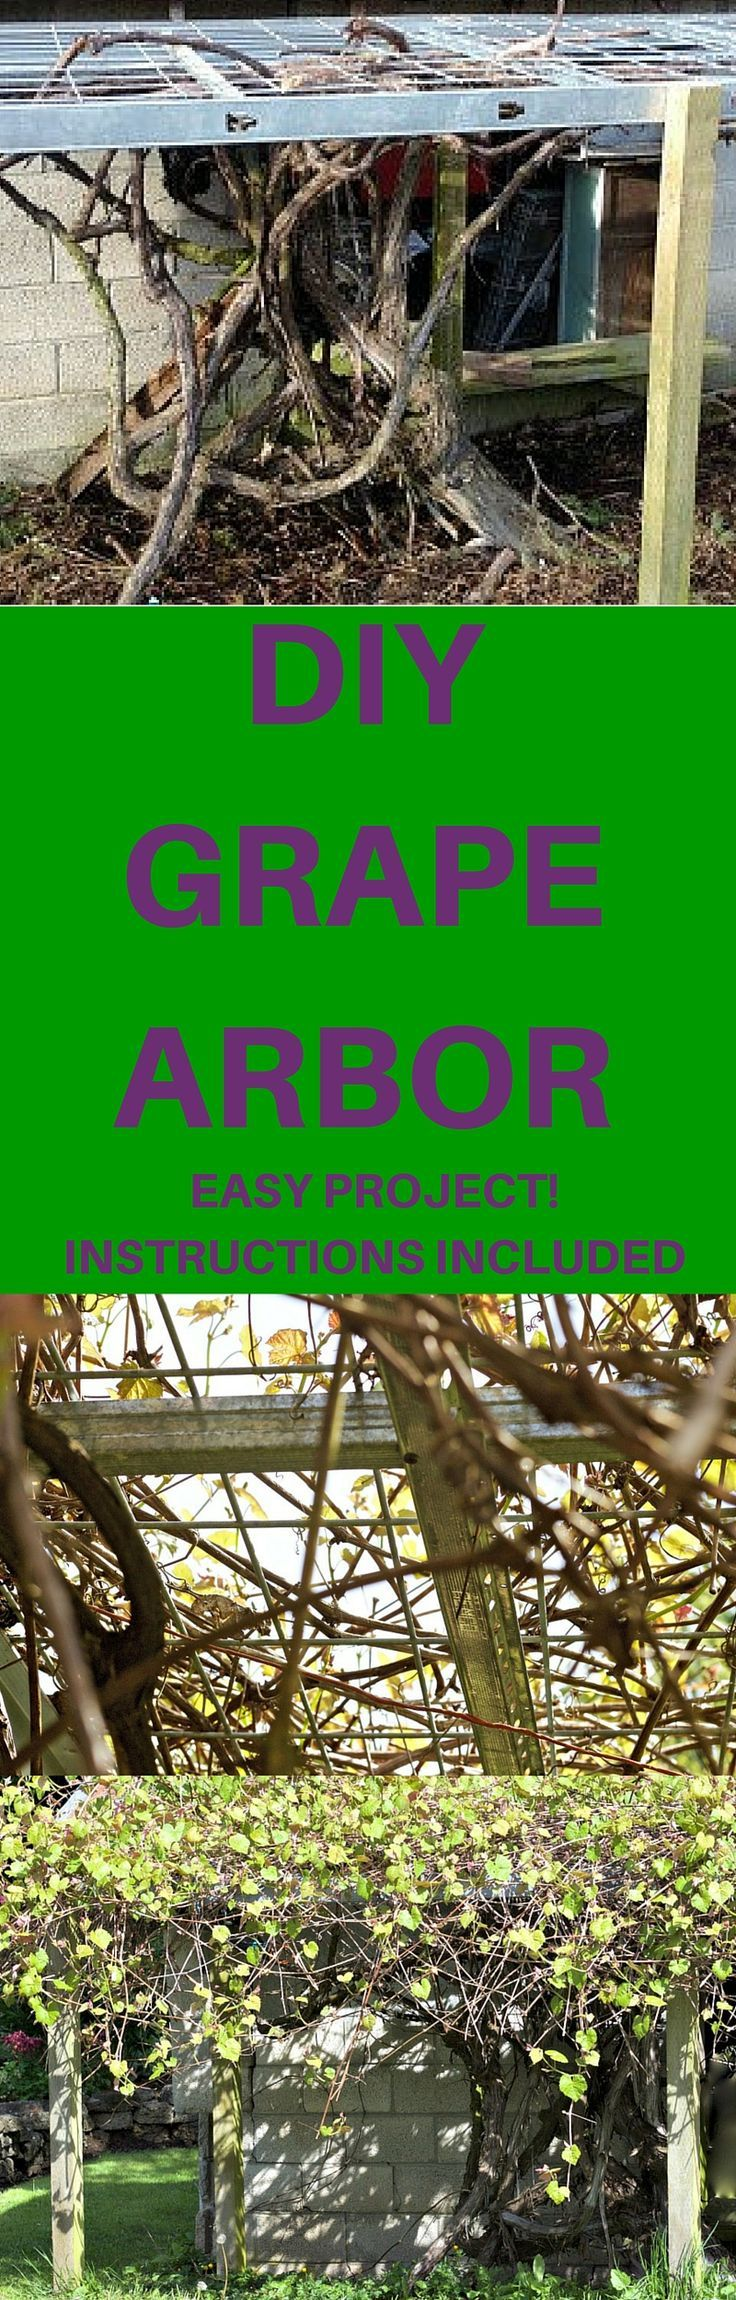 Our Old Lath Arbor Top Collapsed Building An Arbor Is The Answer Here's  How We Made A Sturdy, Long Lasting Diy Grape Arbor!